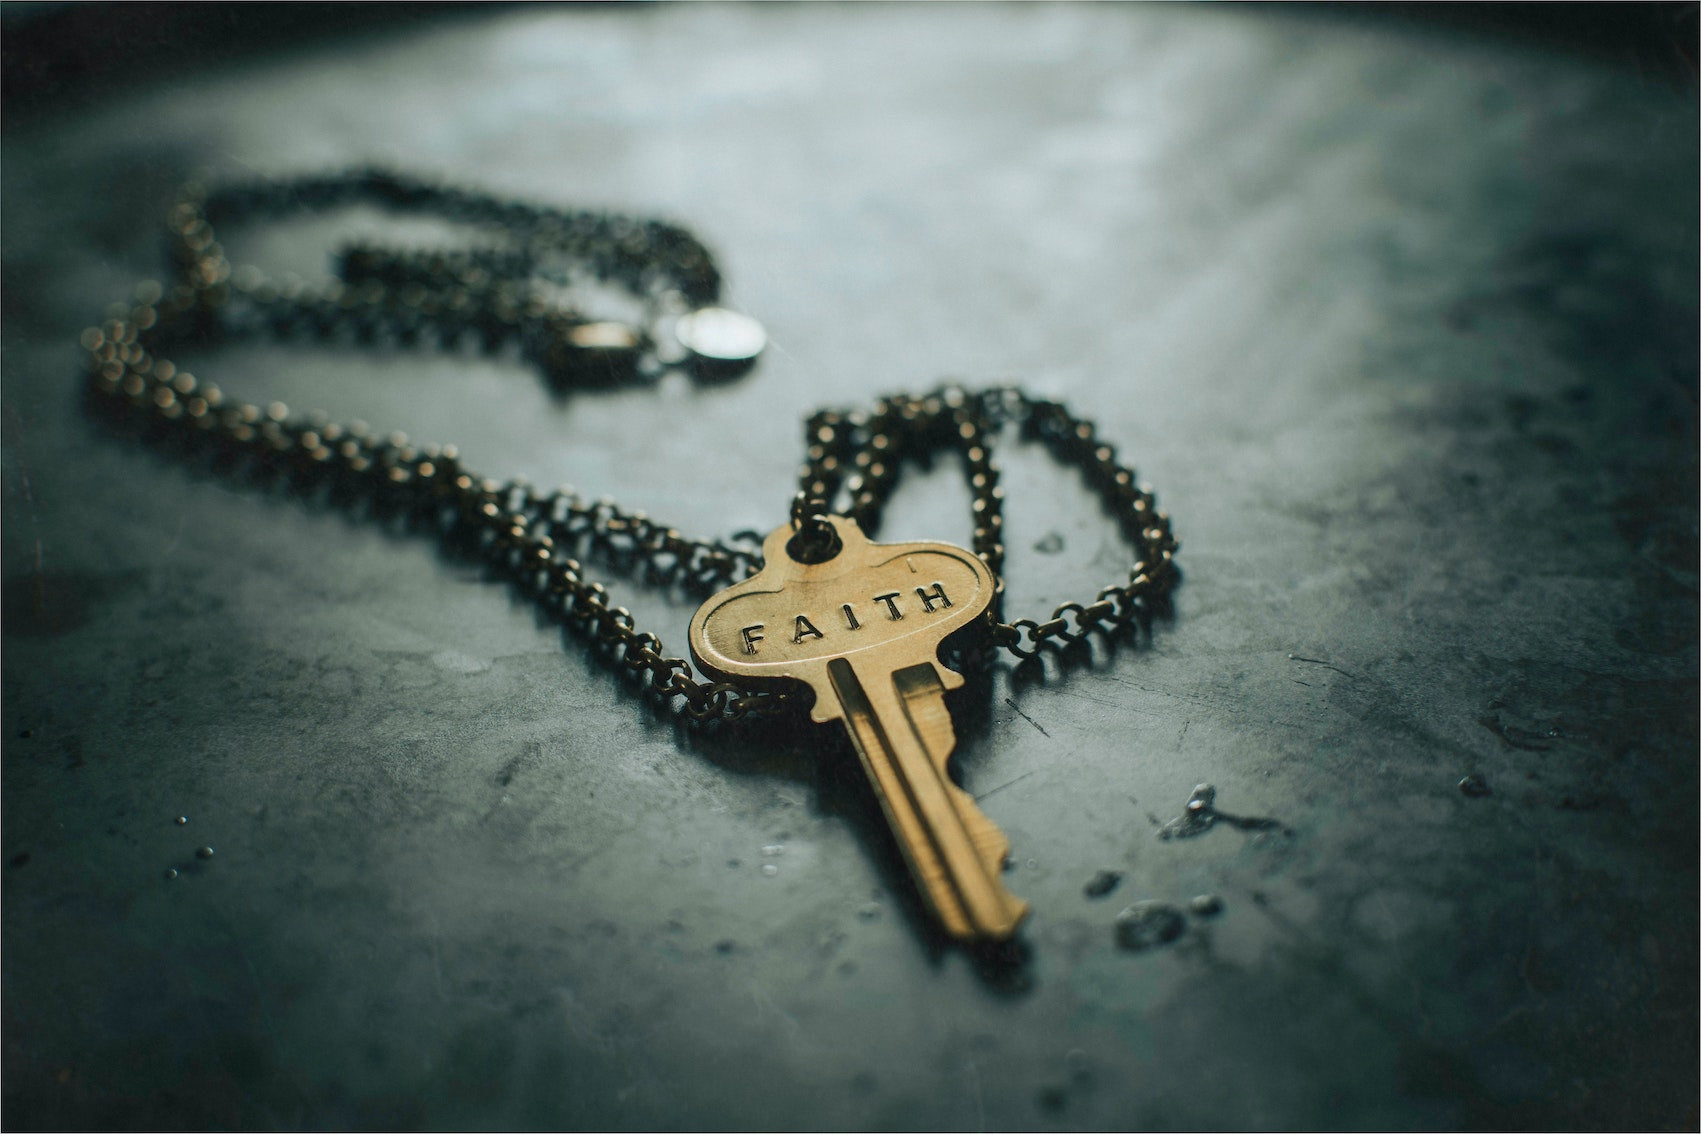 DAY 58 - THE KEY TO BLESSINGS